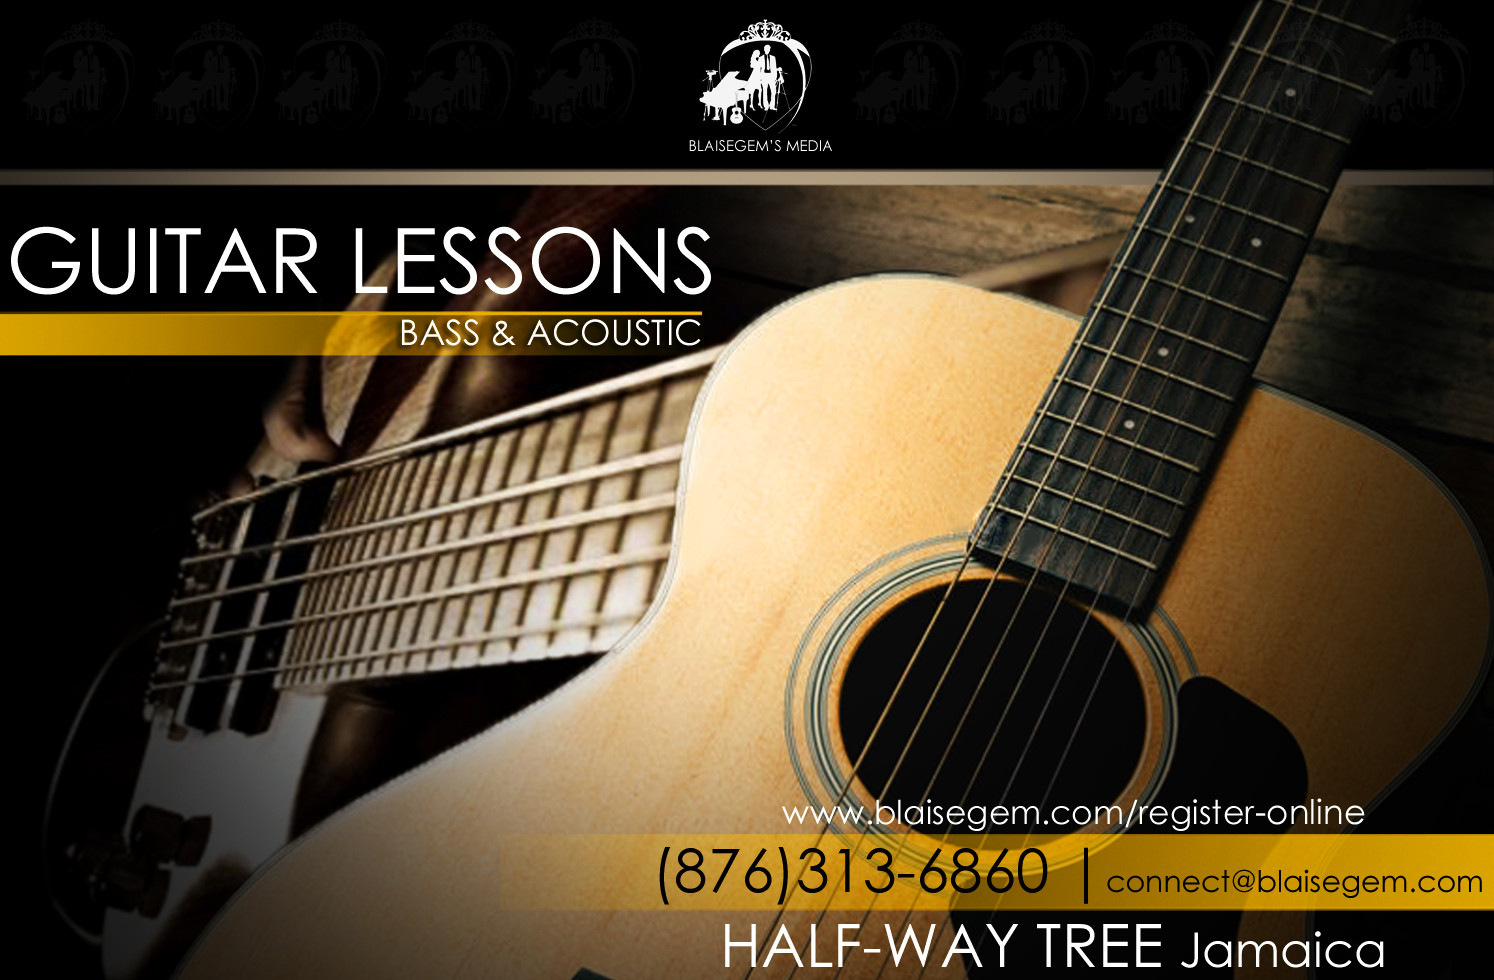 Learn to play the guitar at Blaisegem